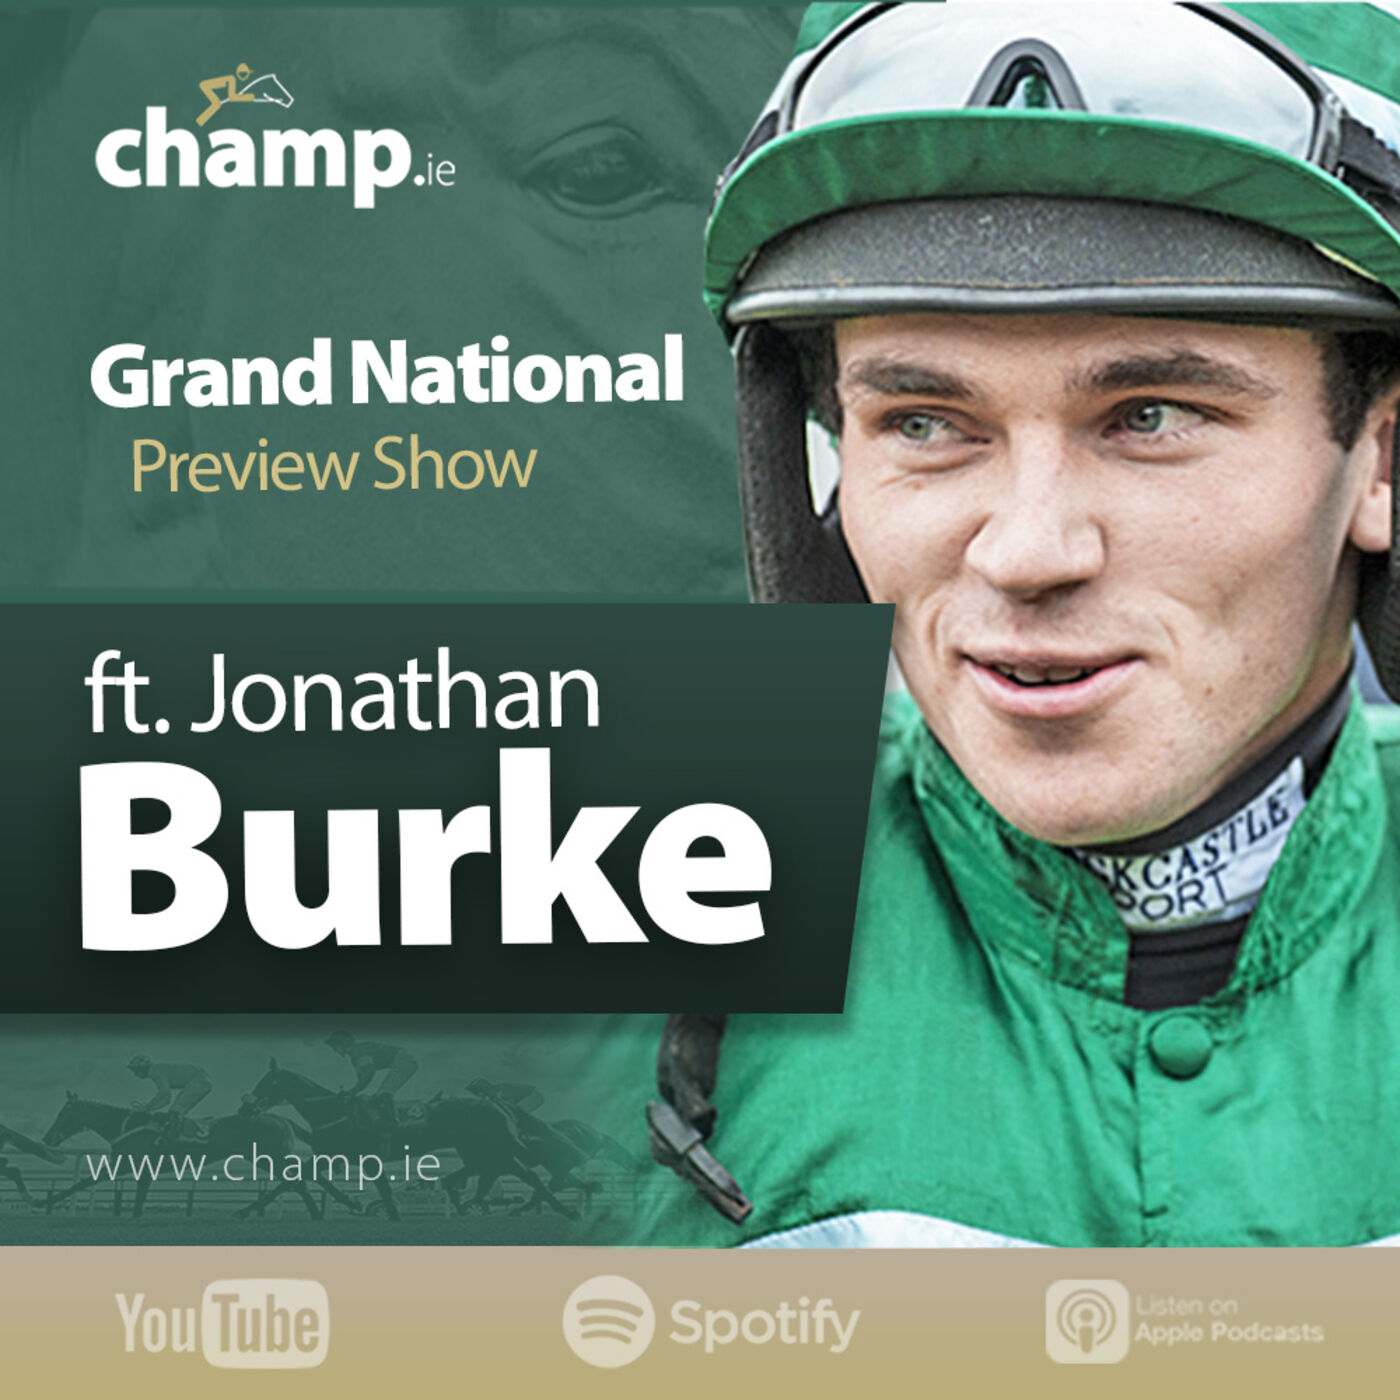 Aintree Grand National 2021 Preview Show Ft. Jockey Jonathan Burke | Horse Racing | Podcast ?